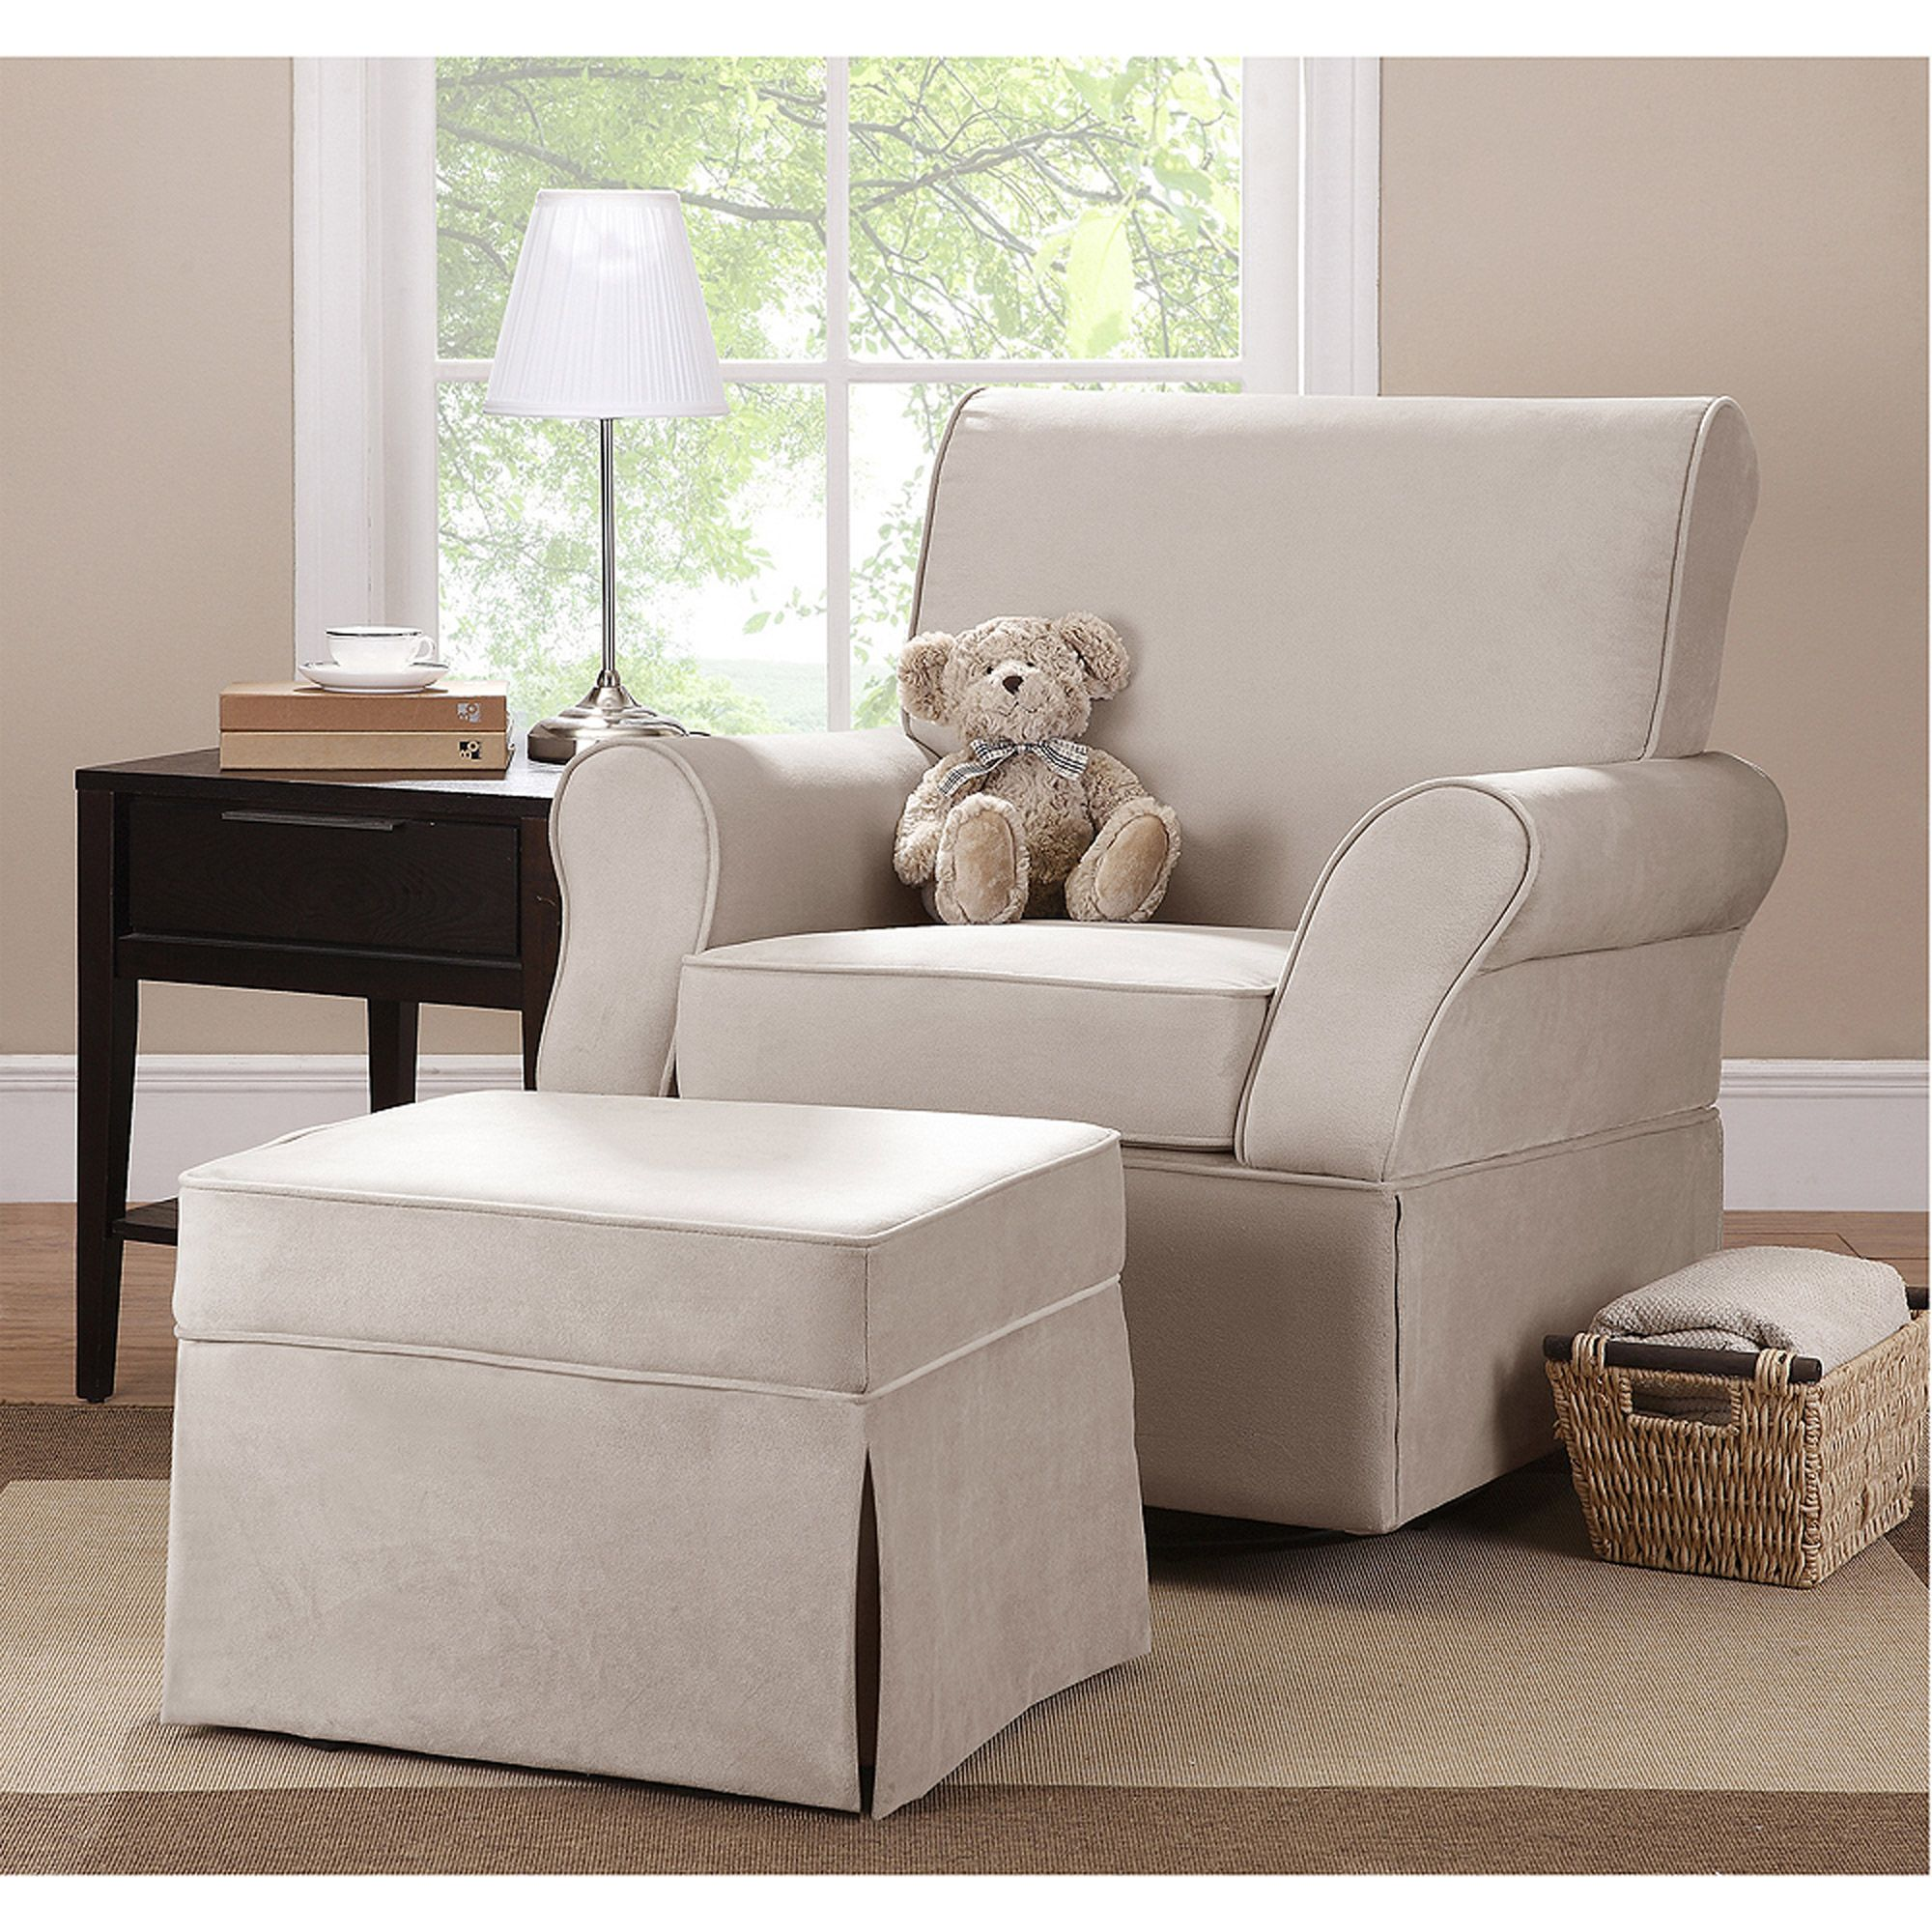 Baby Glider and ottoman, Swivel glider chair, Chair and